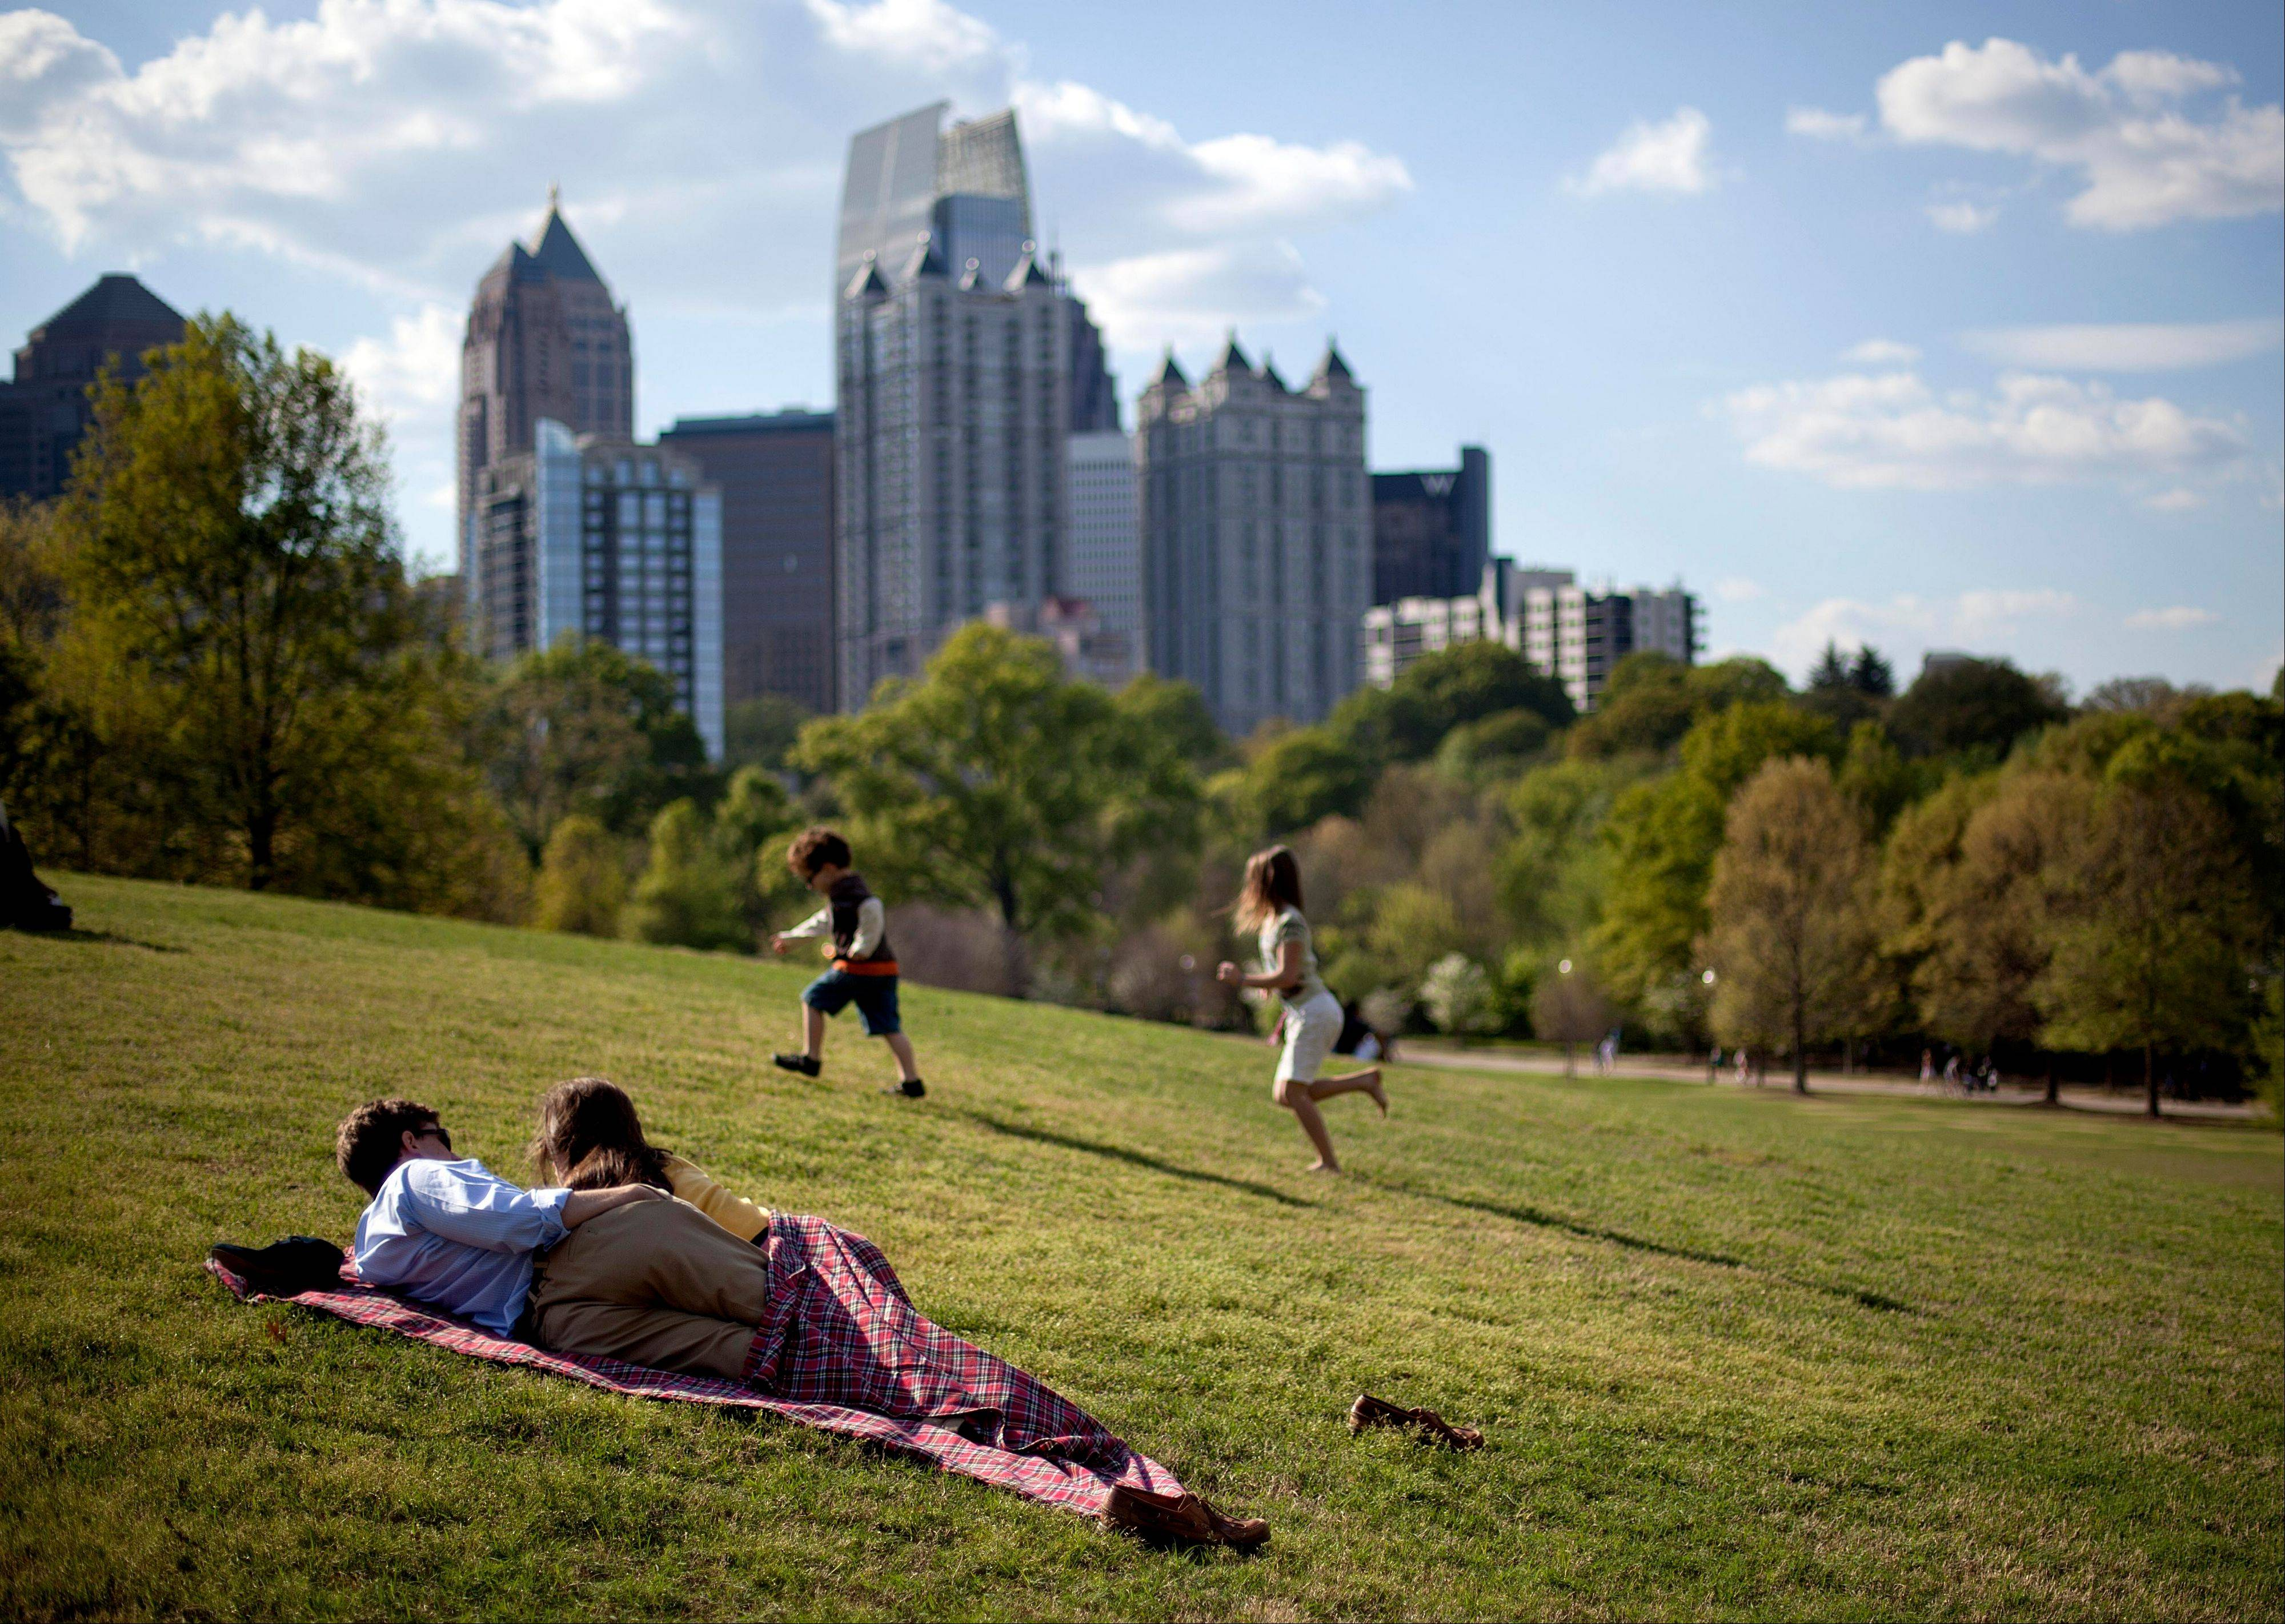 A couple enjoys a sunny afternoon against the backdrop of the Midtown skyline from Piedmont Park in Atlanta. The nearly 200-acre green space in Midtown gives Atlanta residents and visitors a tranquil setting to picnic, play games, walk their dogs and relax in the meadow or along the shores of Lake Clara Meer.